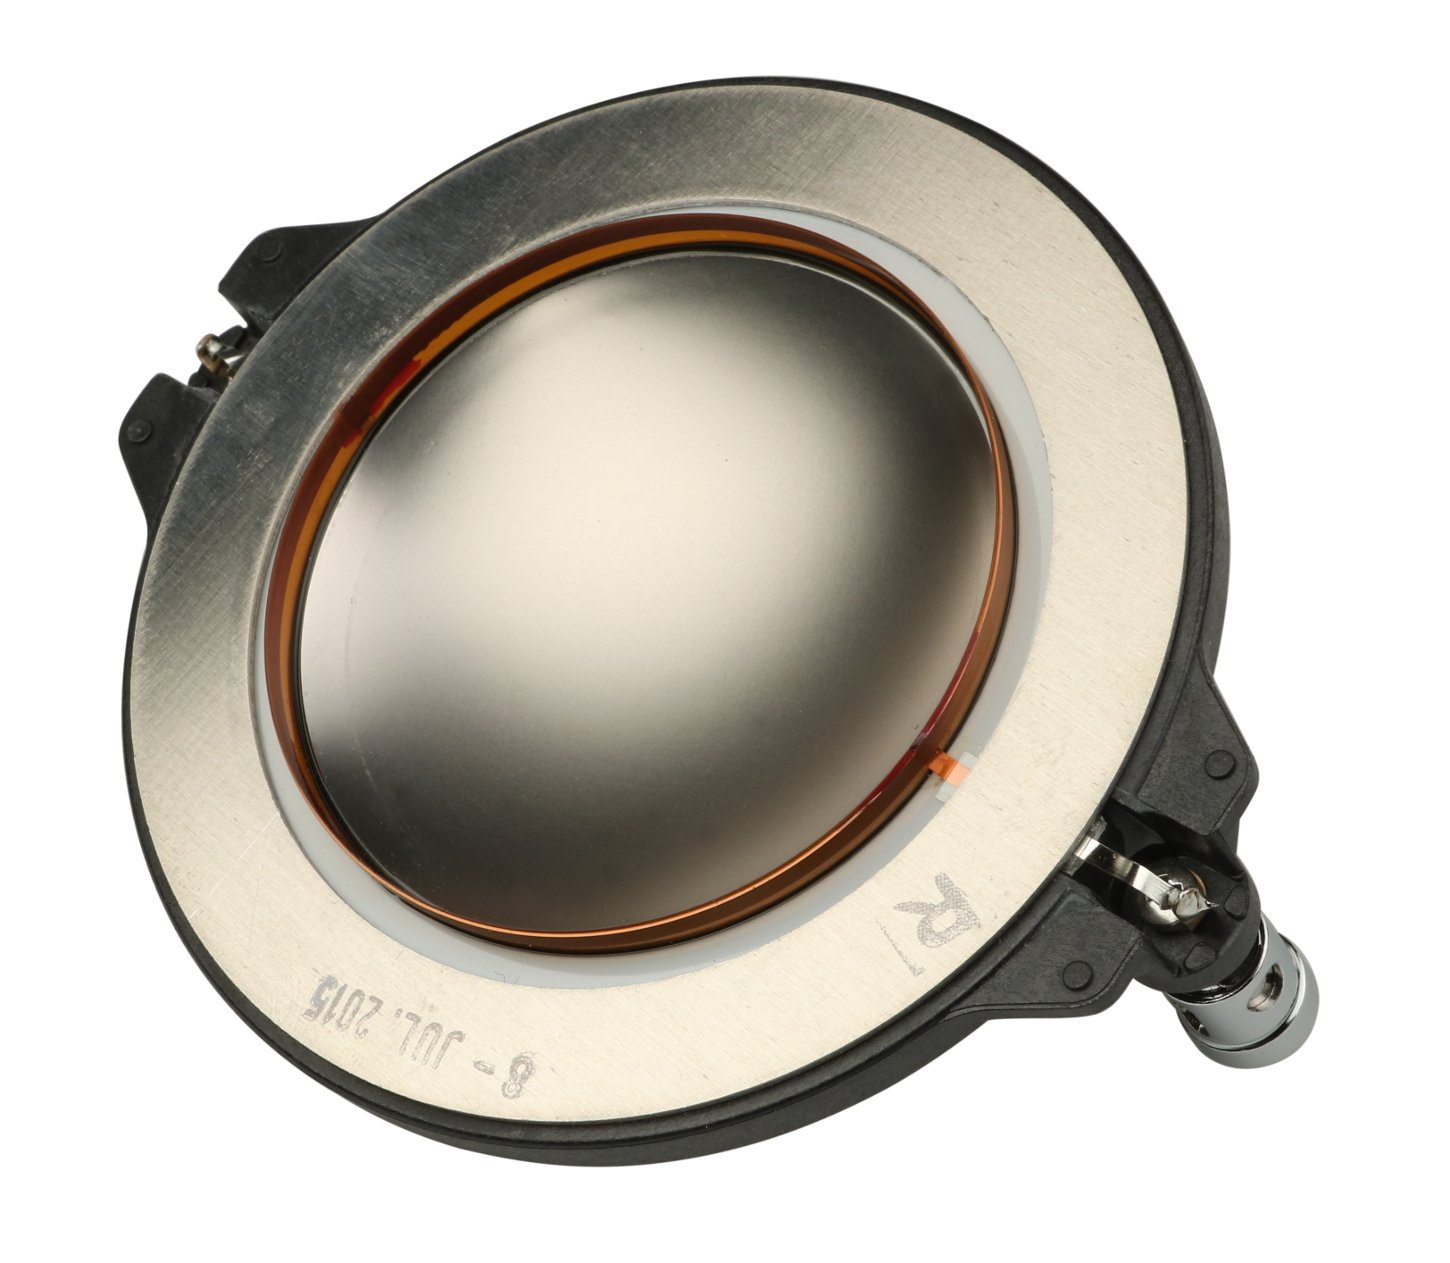 HF Driver Diaphragm for R.5-96